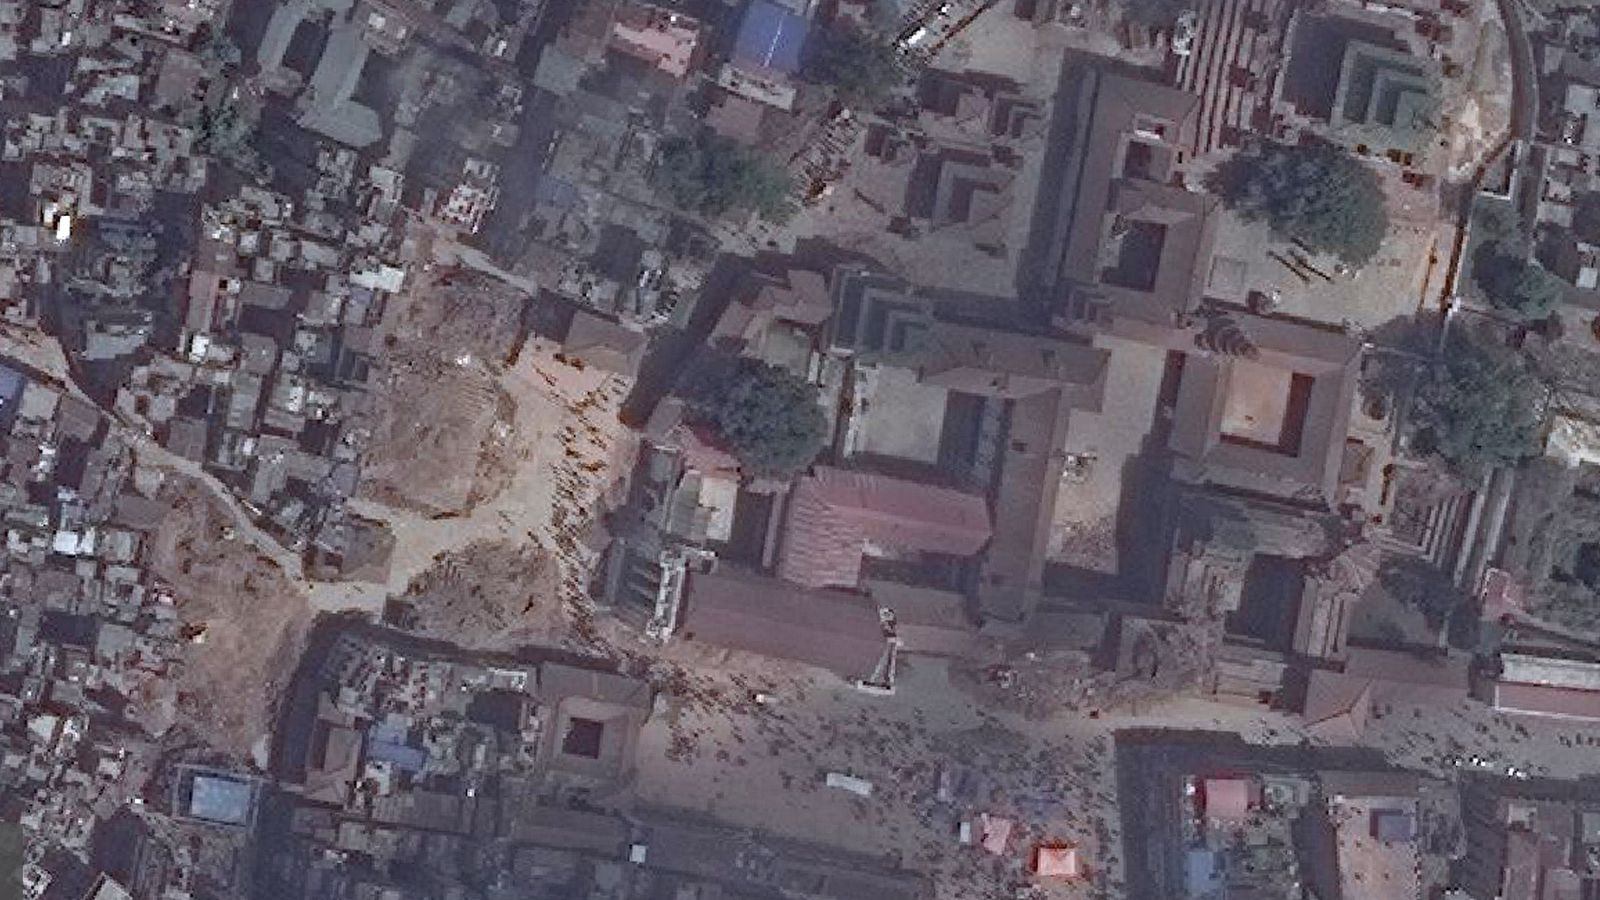 New Satellite Images Of Nepal Show Earthquakes